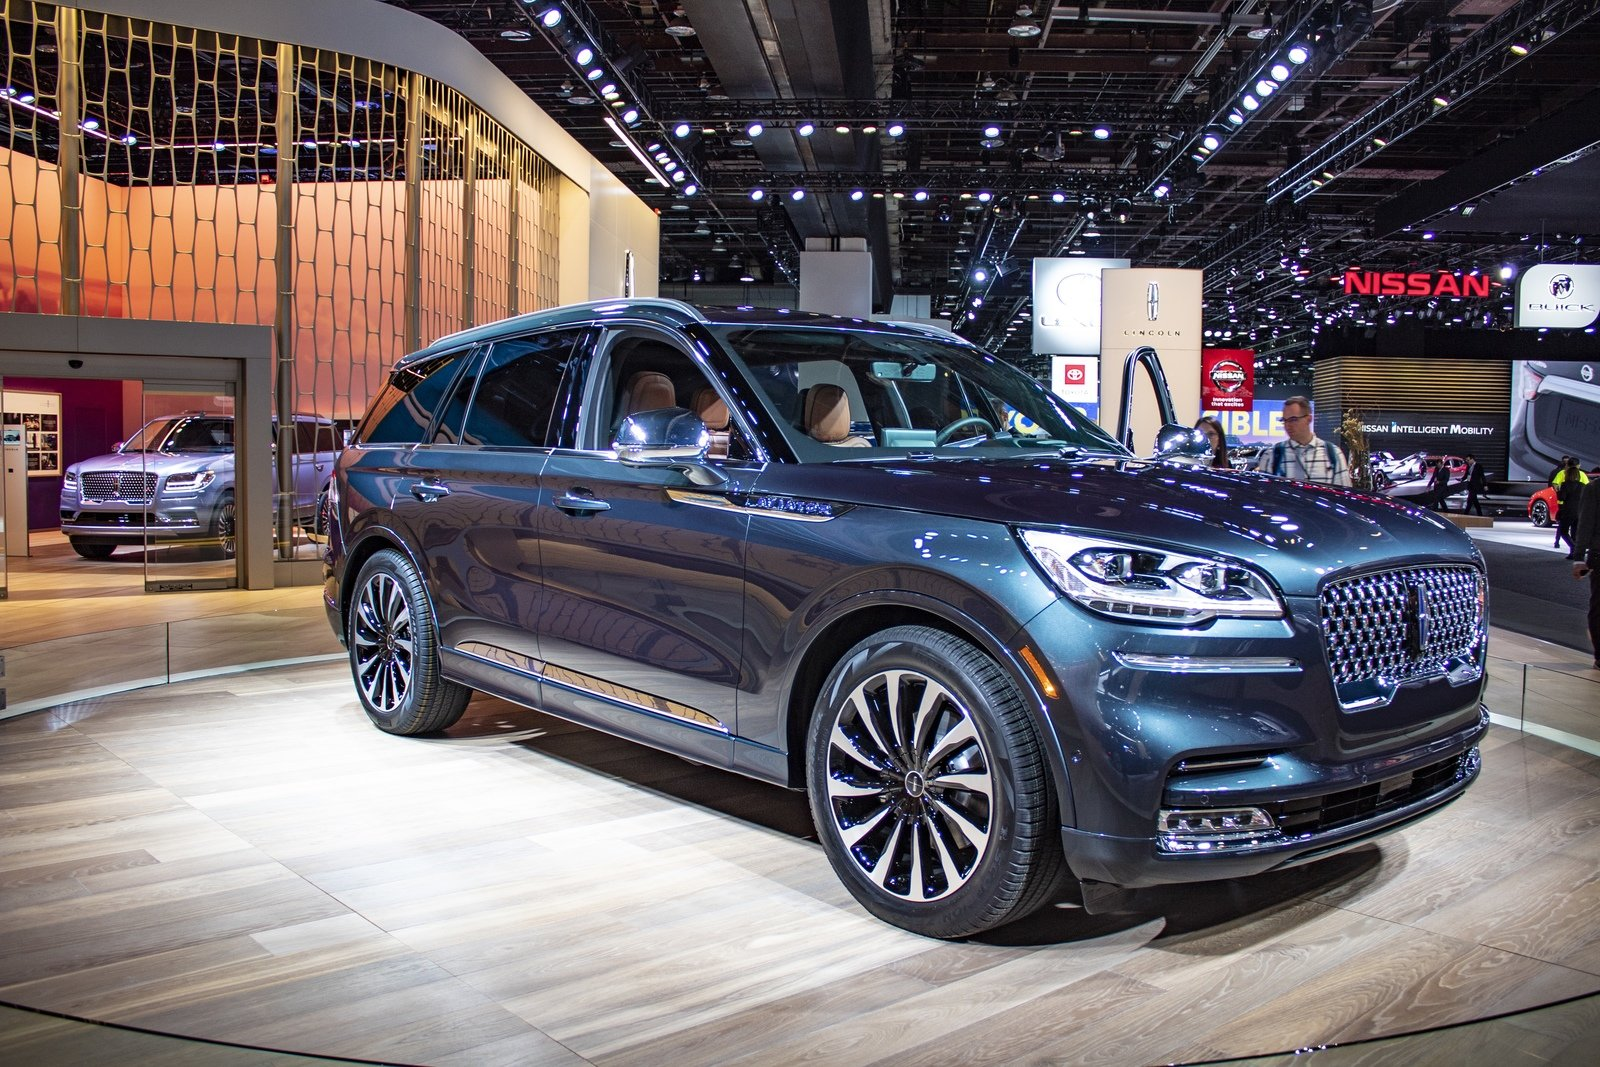 Cars With Third Row Seating >> Lincoln Aviator: Latest News, Reviews, Specifications, Prices, Photos And Videos | Top Speed